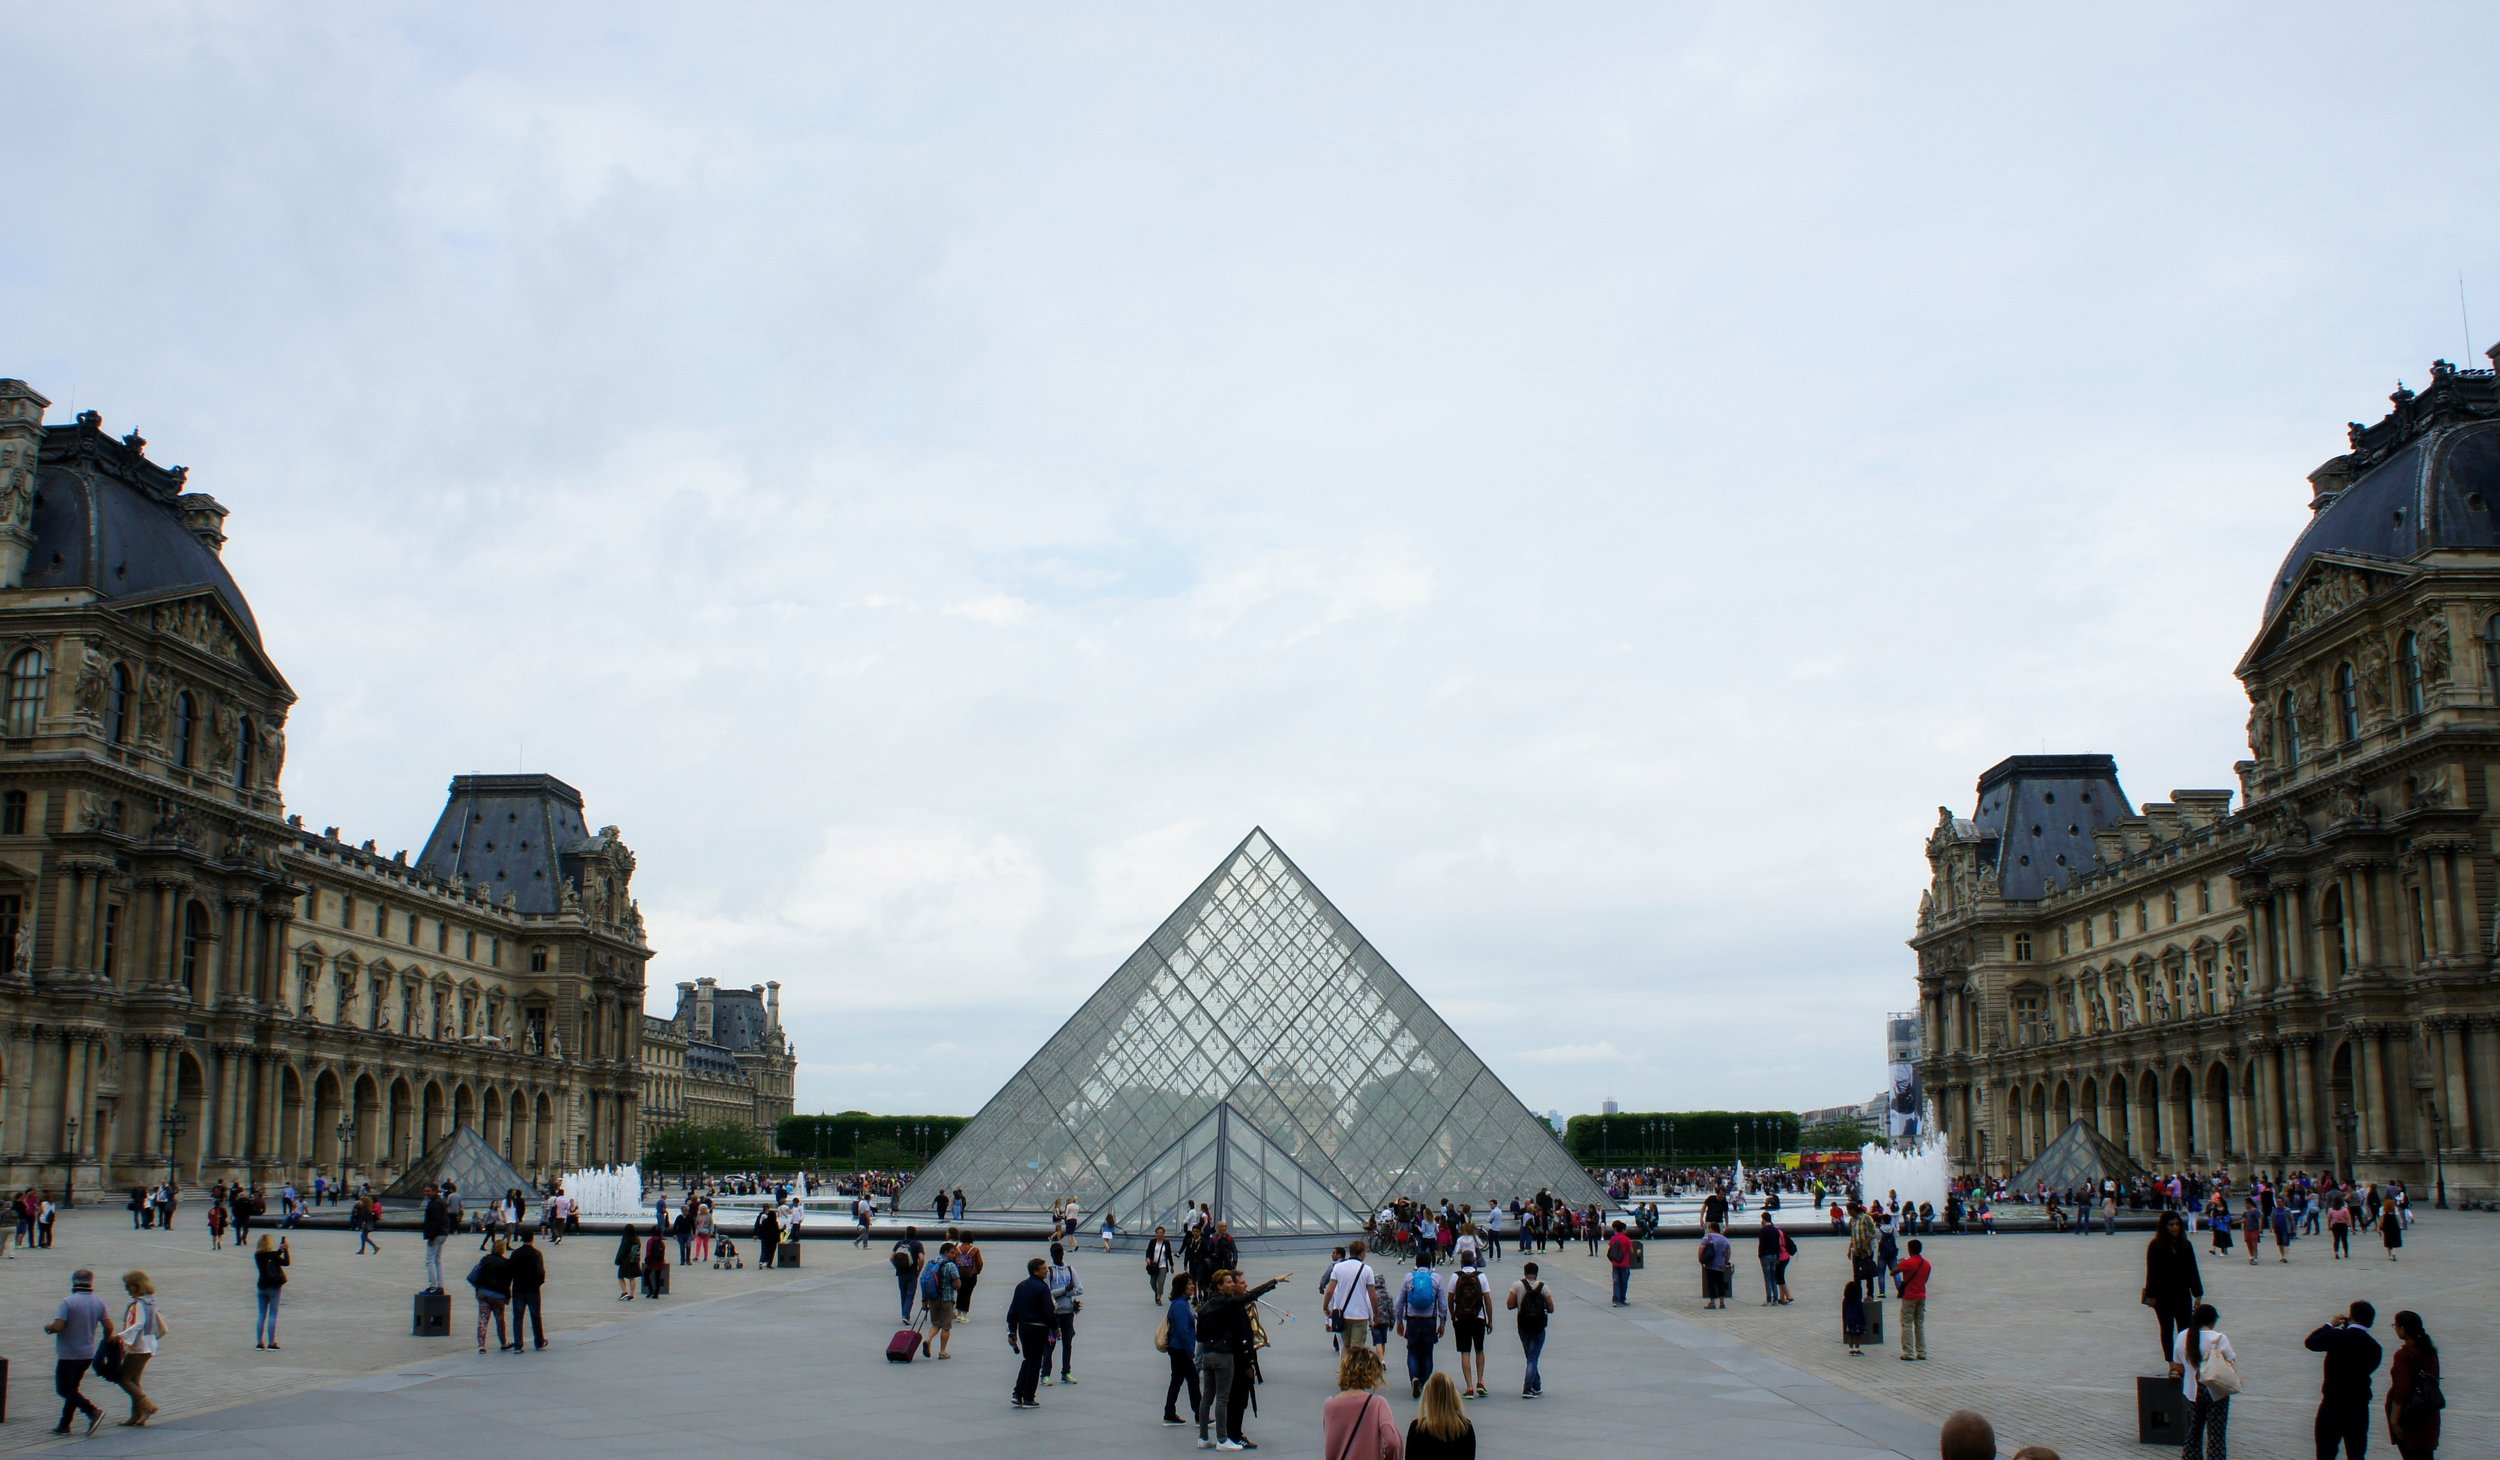 My first view of I.M. Pei's incredible entracne to The Louvre